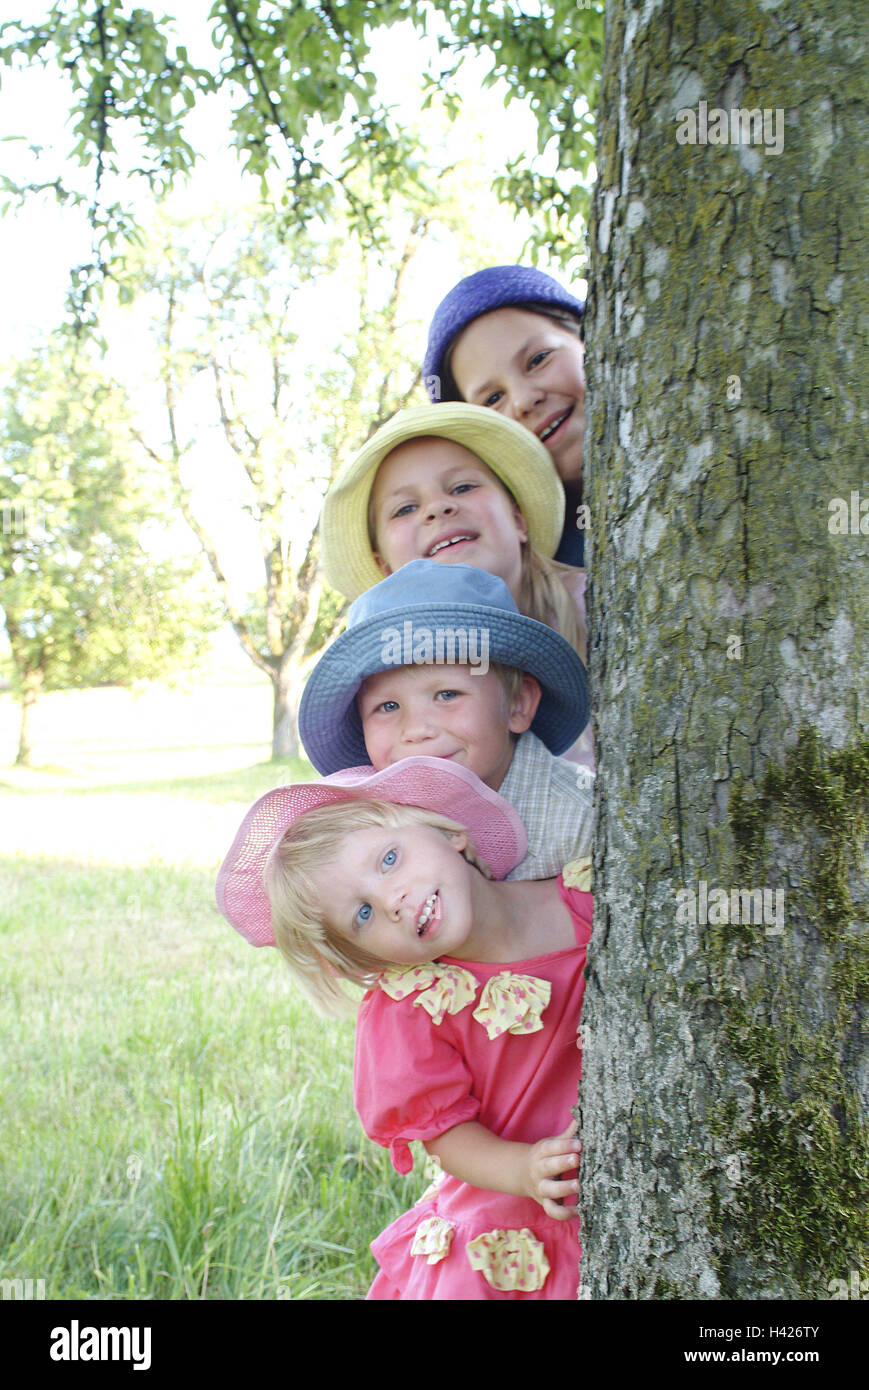 Log, girls, boy, smiles,  forth-sees, portrait,   Child portrait, children, siblings, friends, four, 4-12 years, - Stock Image